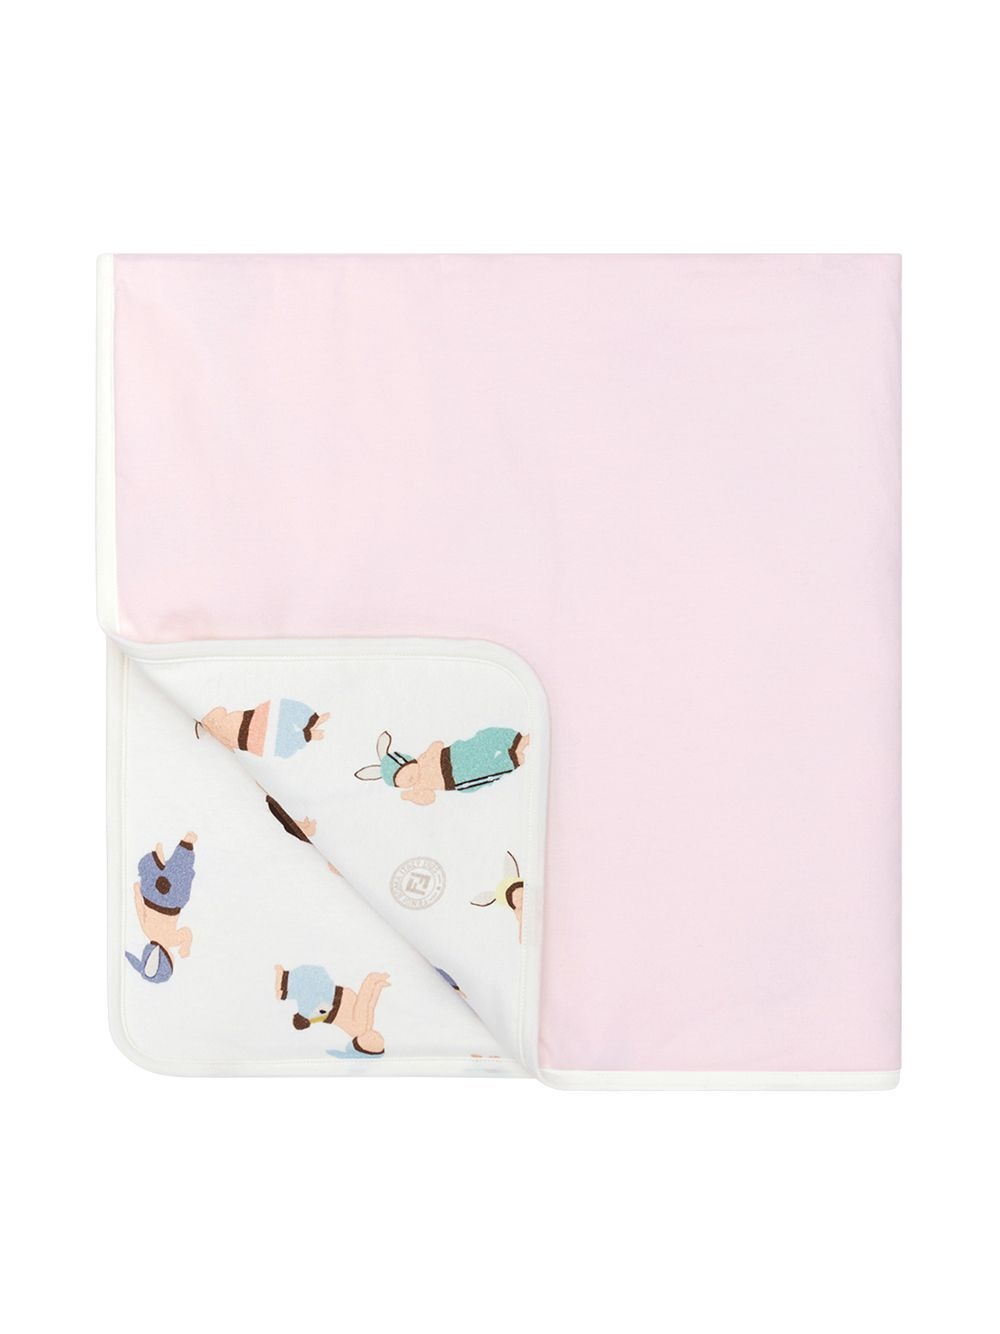 BUJ112. / F10C11 PINK / MY FIRST FENDI BLANKET